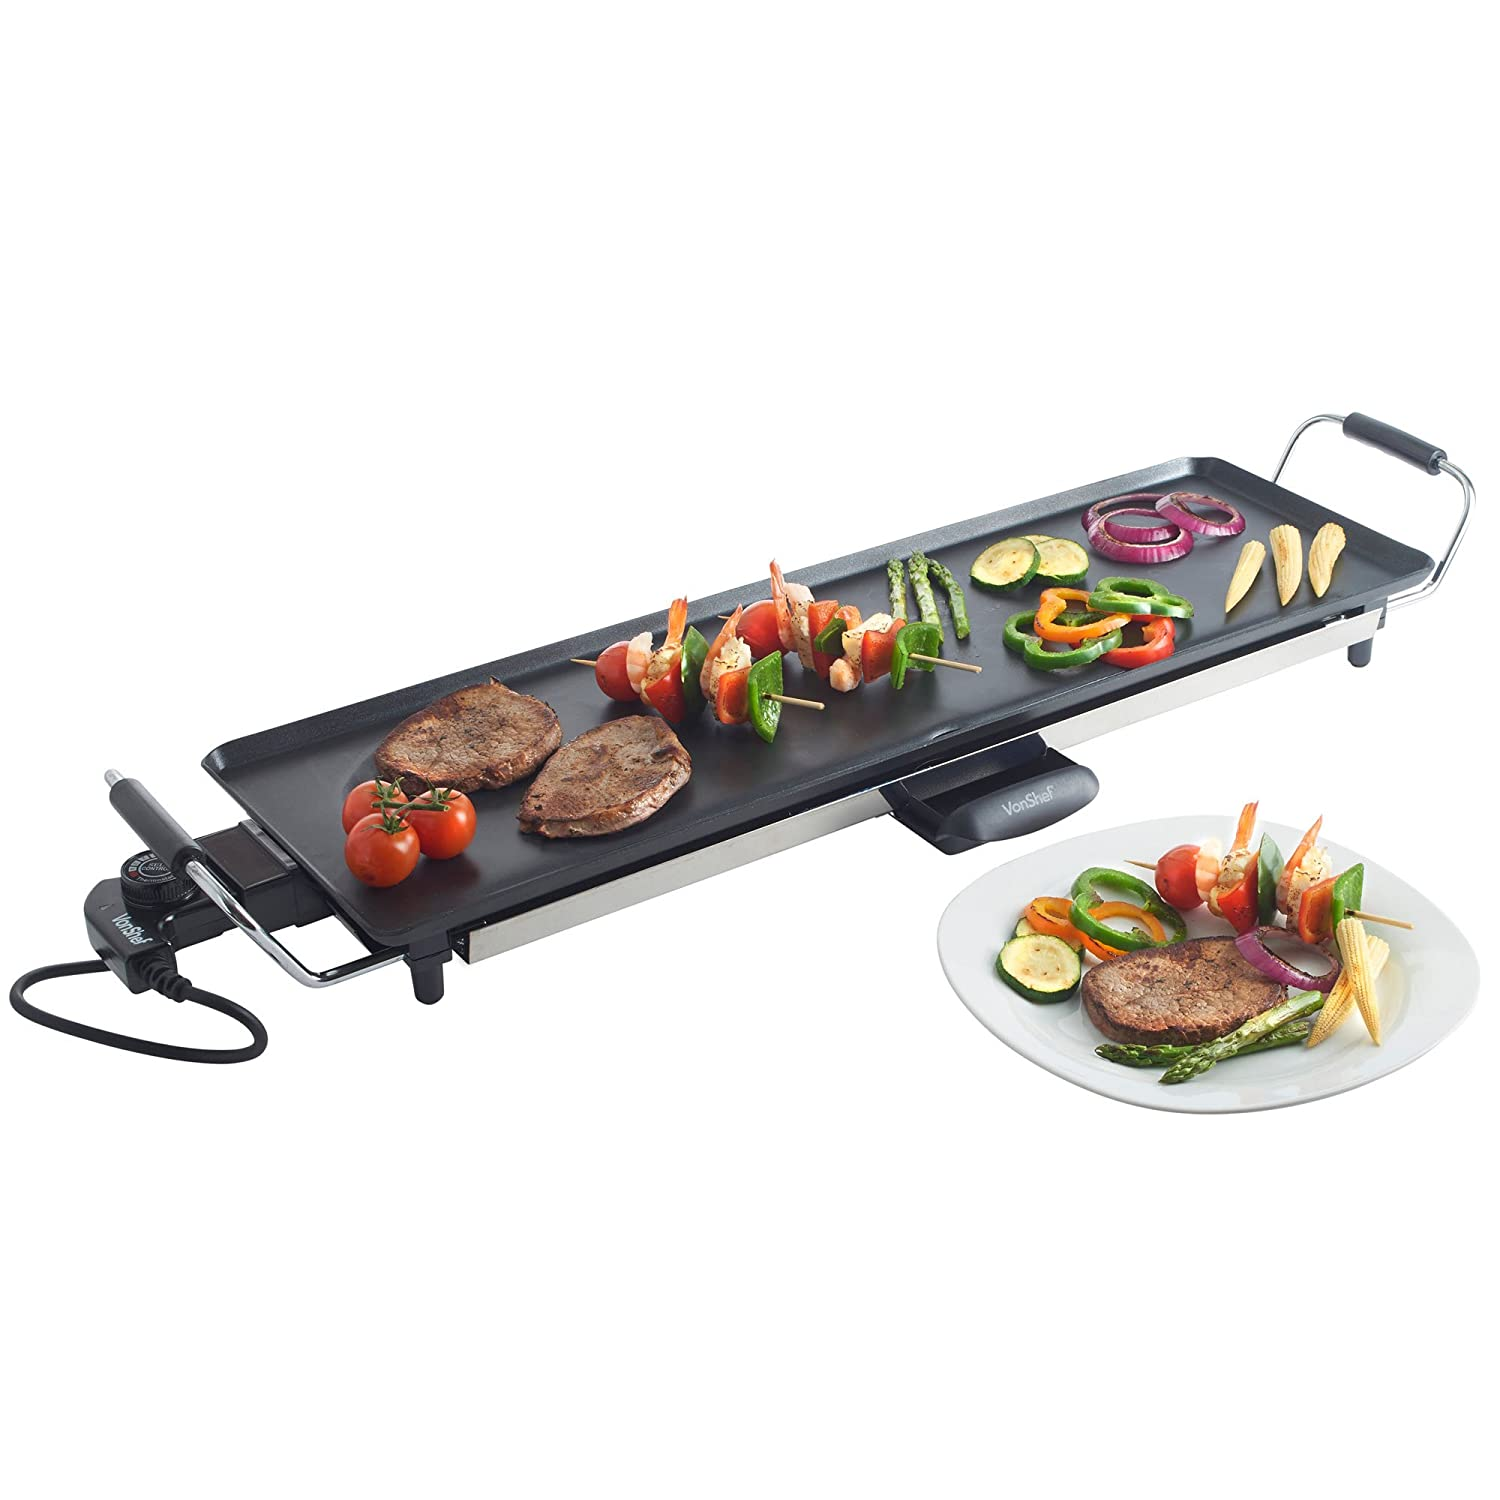 5b15c9bc718d Buy VonShef Electric XL Teppanyaki Style Barbecue Table Grill Griddle with  Adjustable Temperature and 8 Spatulas